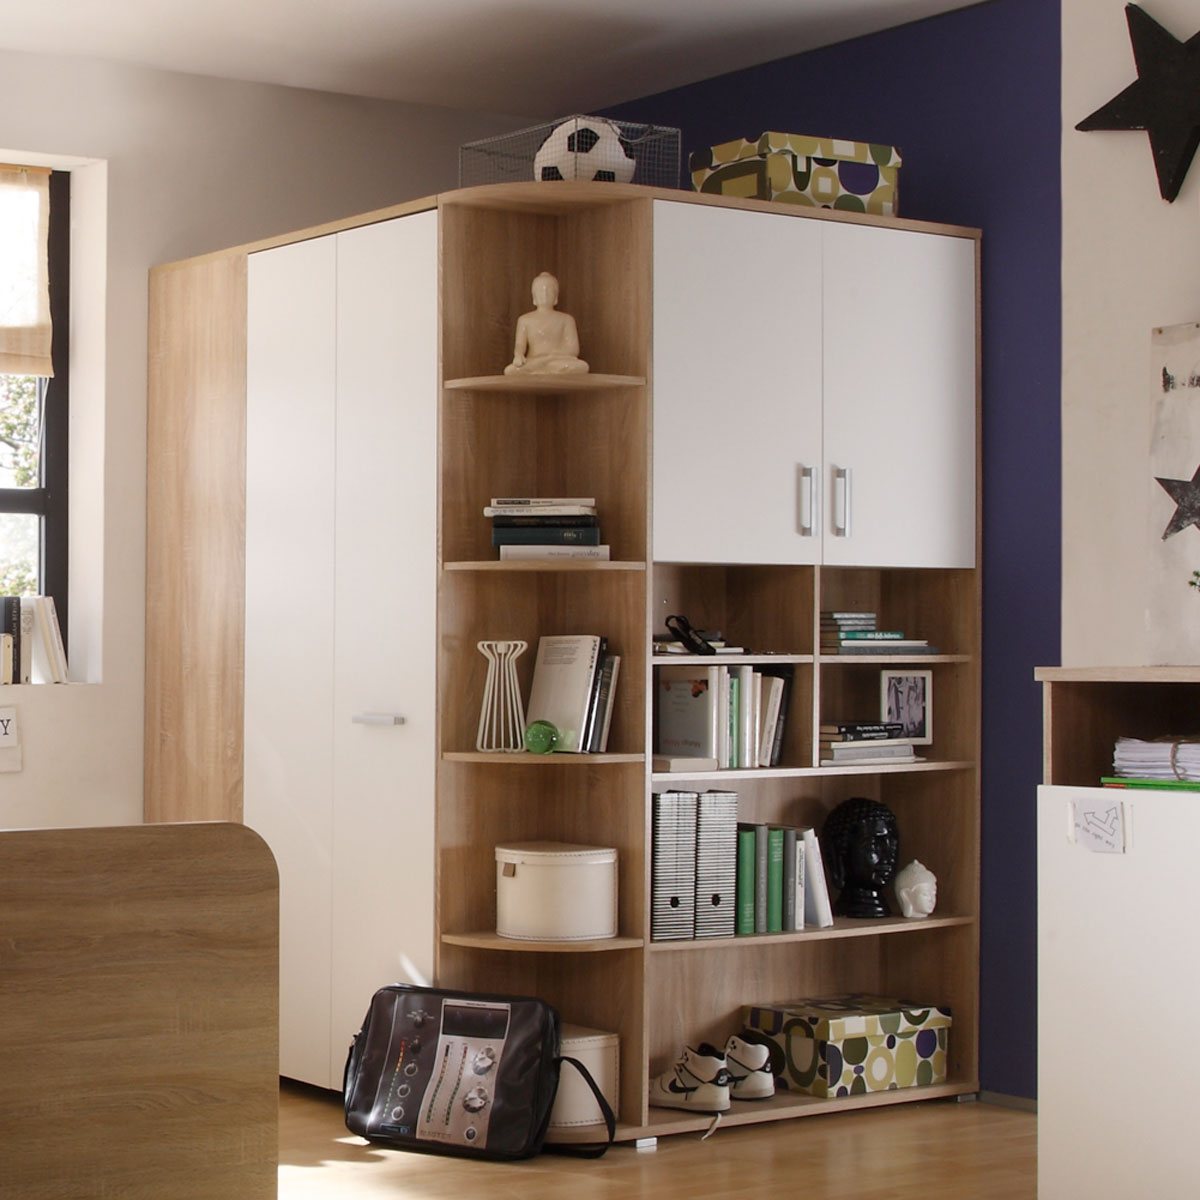 begehbarer eckschrank corner kleiderschrank schrank sonoma eiche wei ebay. Black Bedroom Furniture Sets. Home Design Ideas